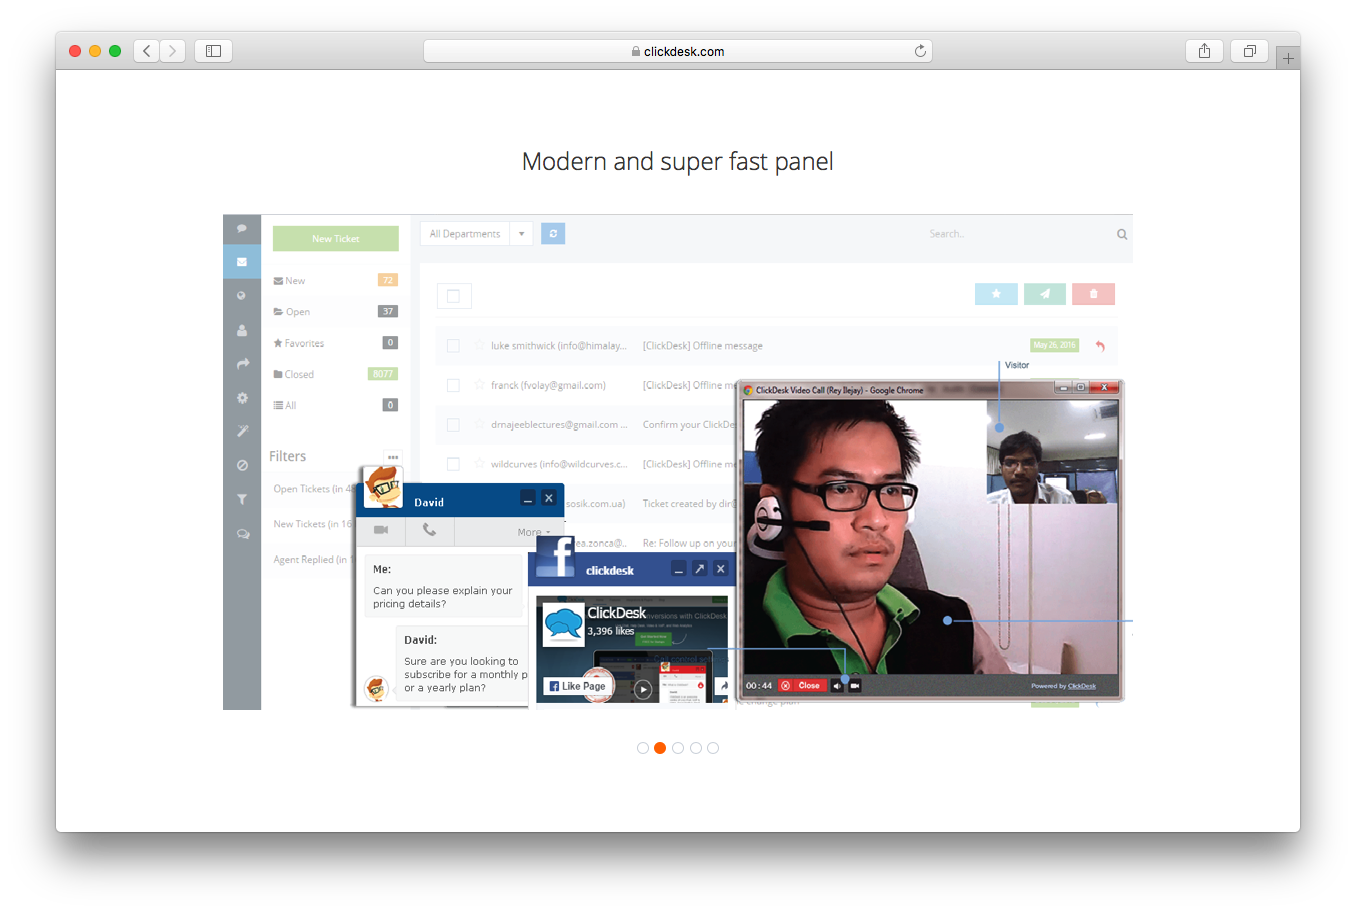 ClickDesk homepage screenshot 2 modern and super fast panel message video chat